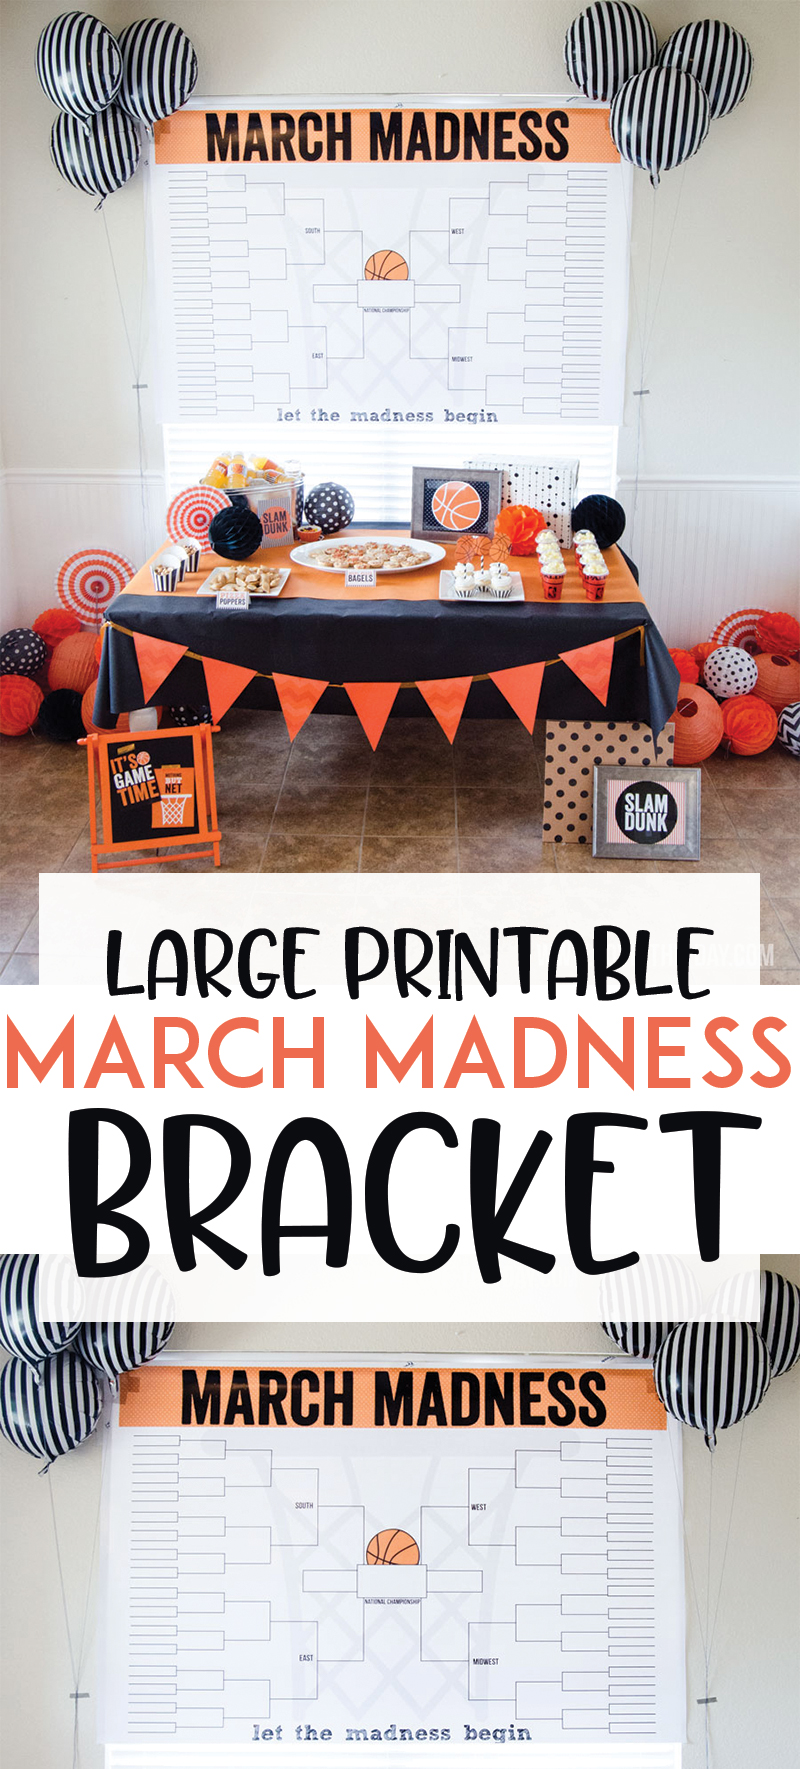 2018 March Madness Bracket Printable by Lindi Haws of Love The Day